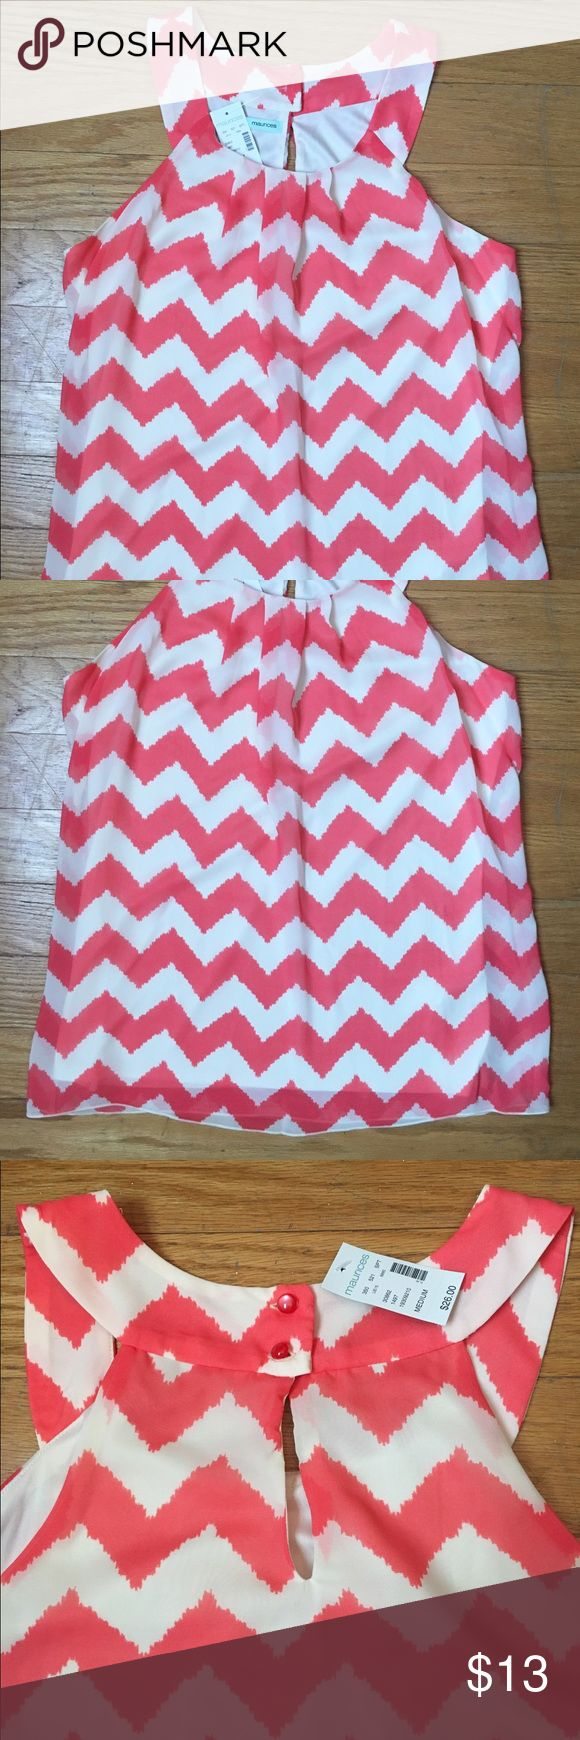 Coral and white chevron blouse Coral and white chevron chiffon tank top. NWT white is more of a slightly off white. Maurices Tops Tank Tops